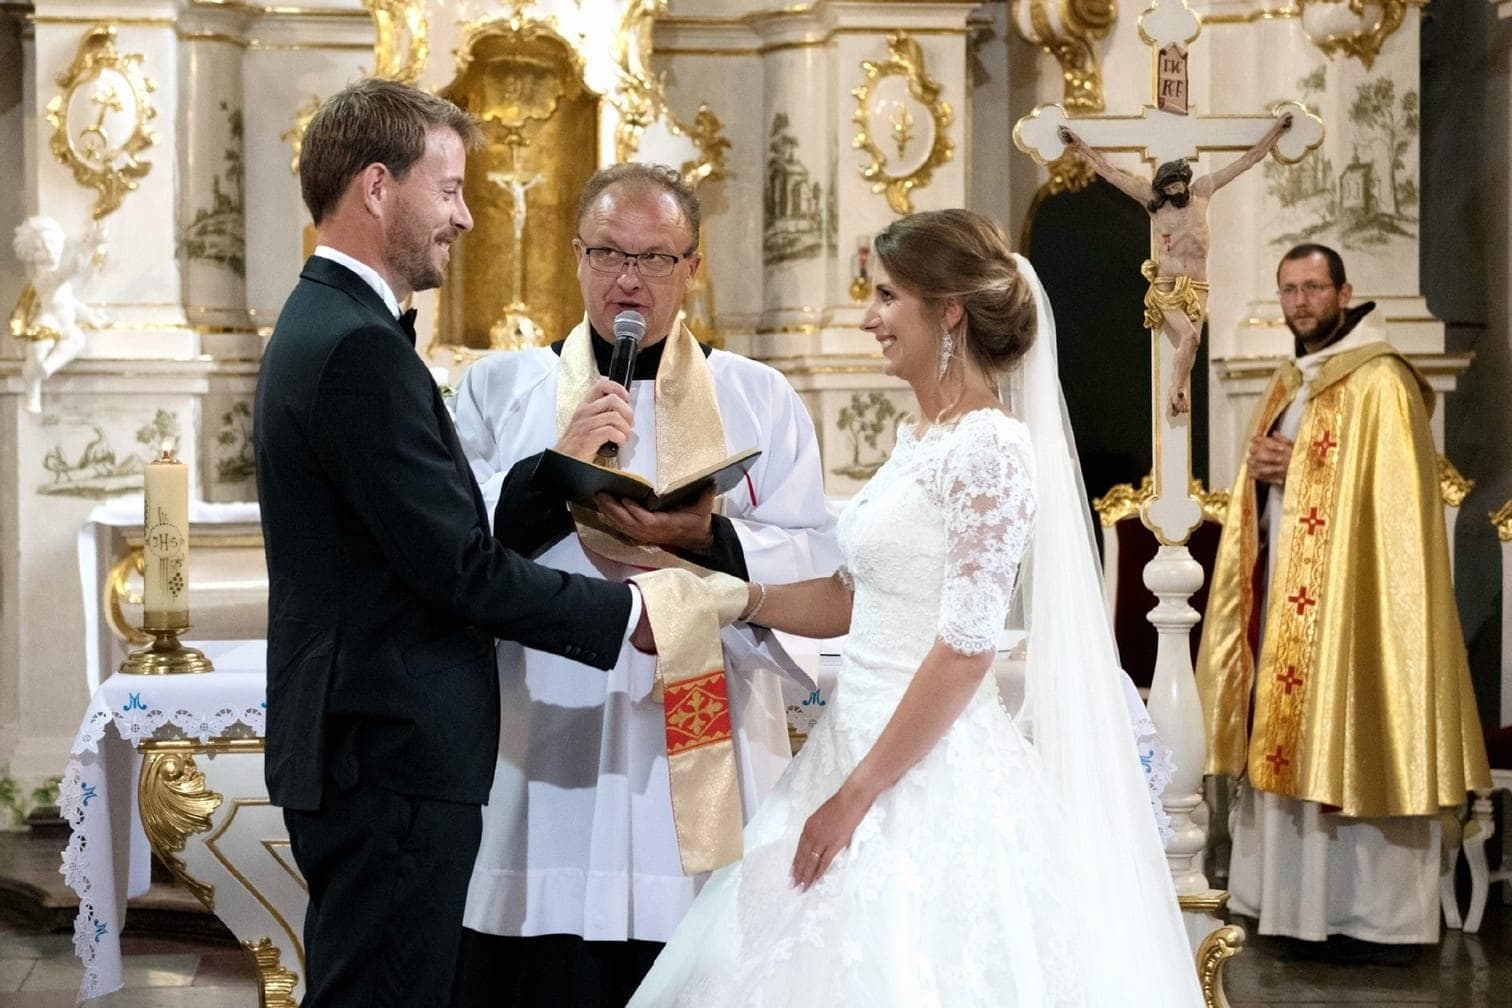 <p>Brautvater J&oacute;zef begleitete Anna zum Altar.</p> Foto: MG RTL D / flashed by micky